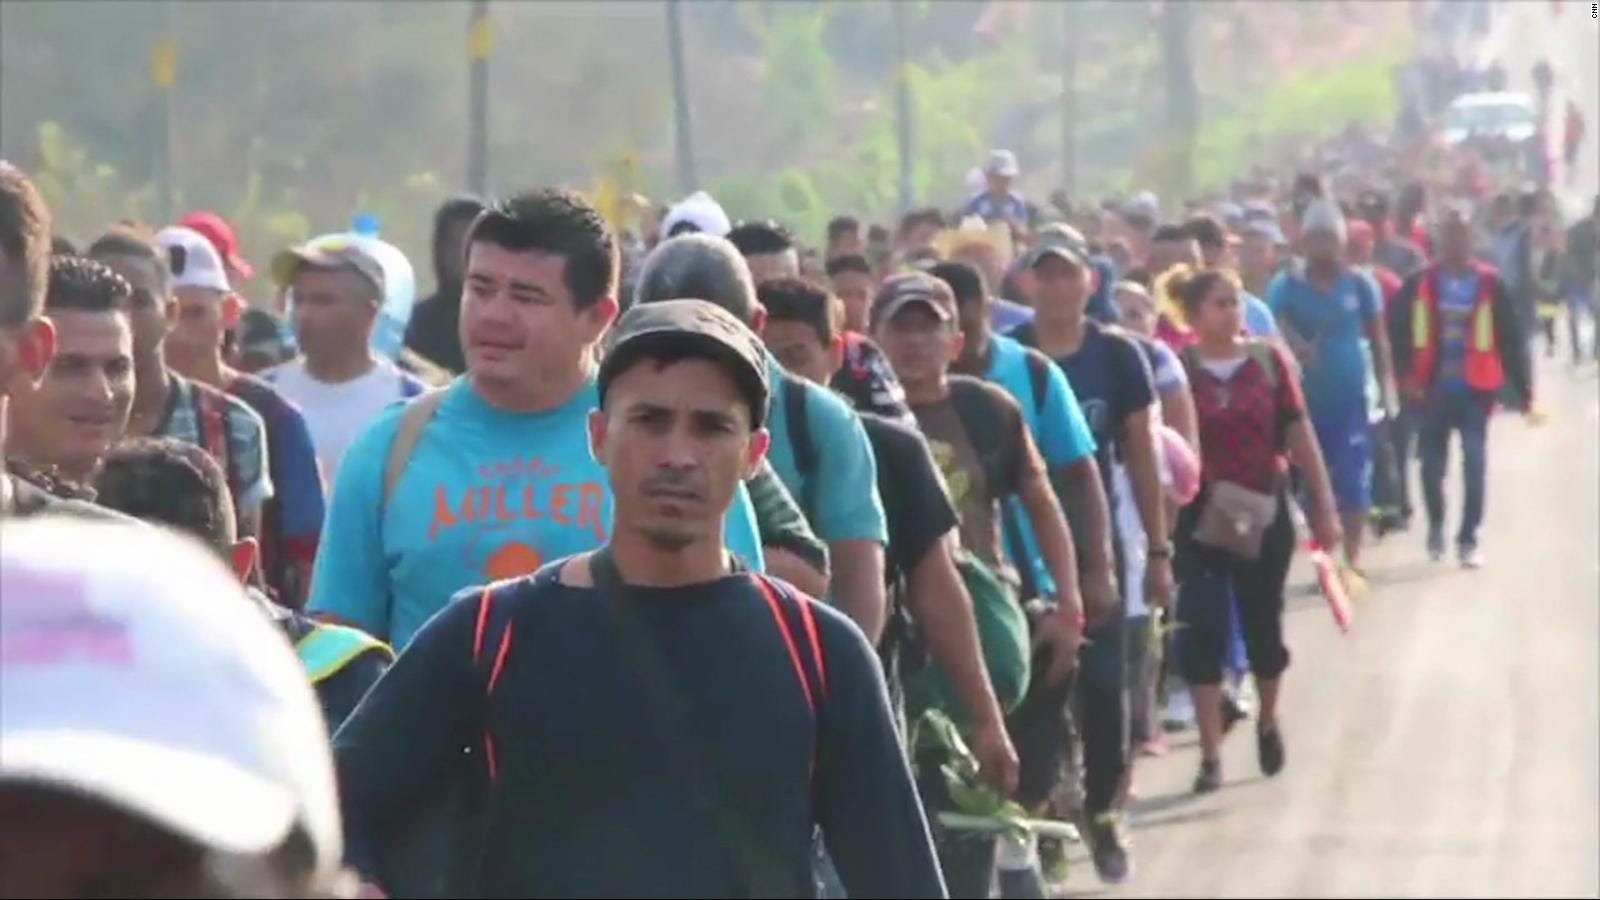 US Border Controversy, Citizen Pilot Reporting Caravan Movements Forced to Land After Shot-At by Cartel, Injured But Safe: Capt. Dave Bertrand, Ret. +Videos